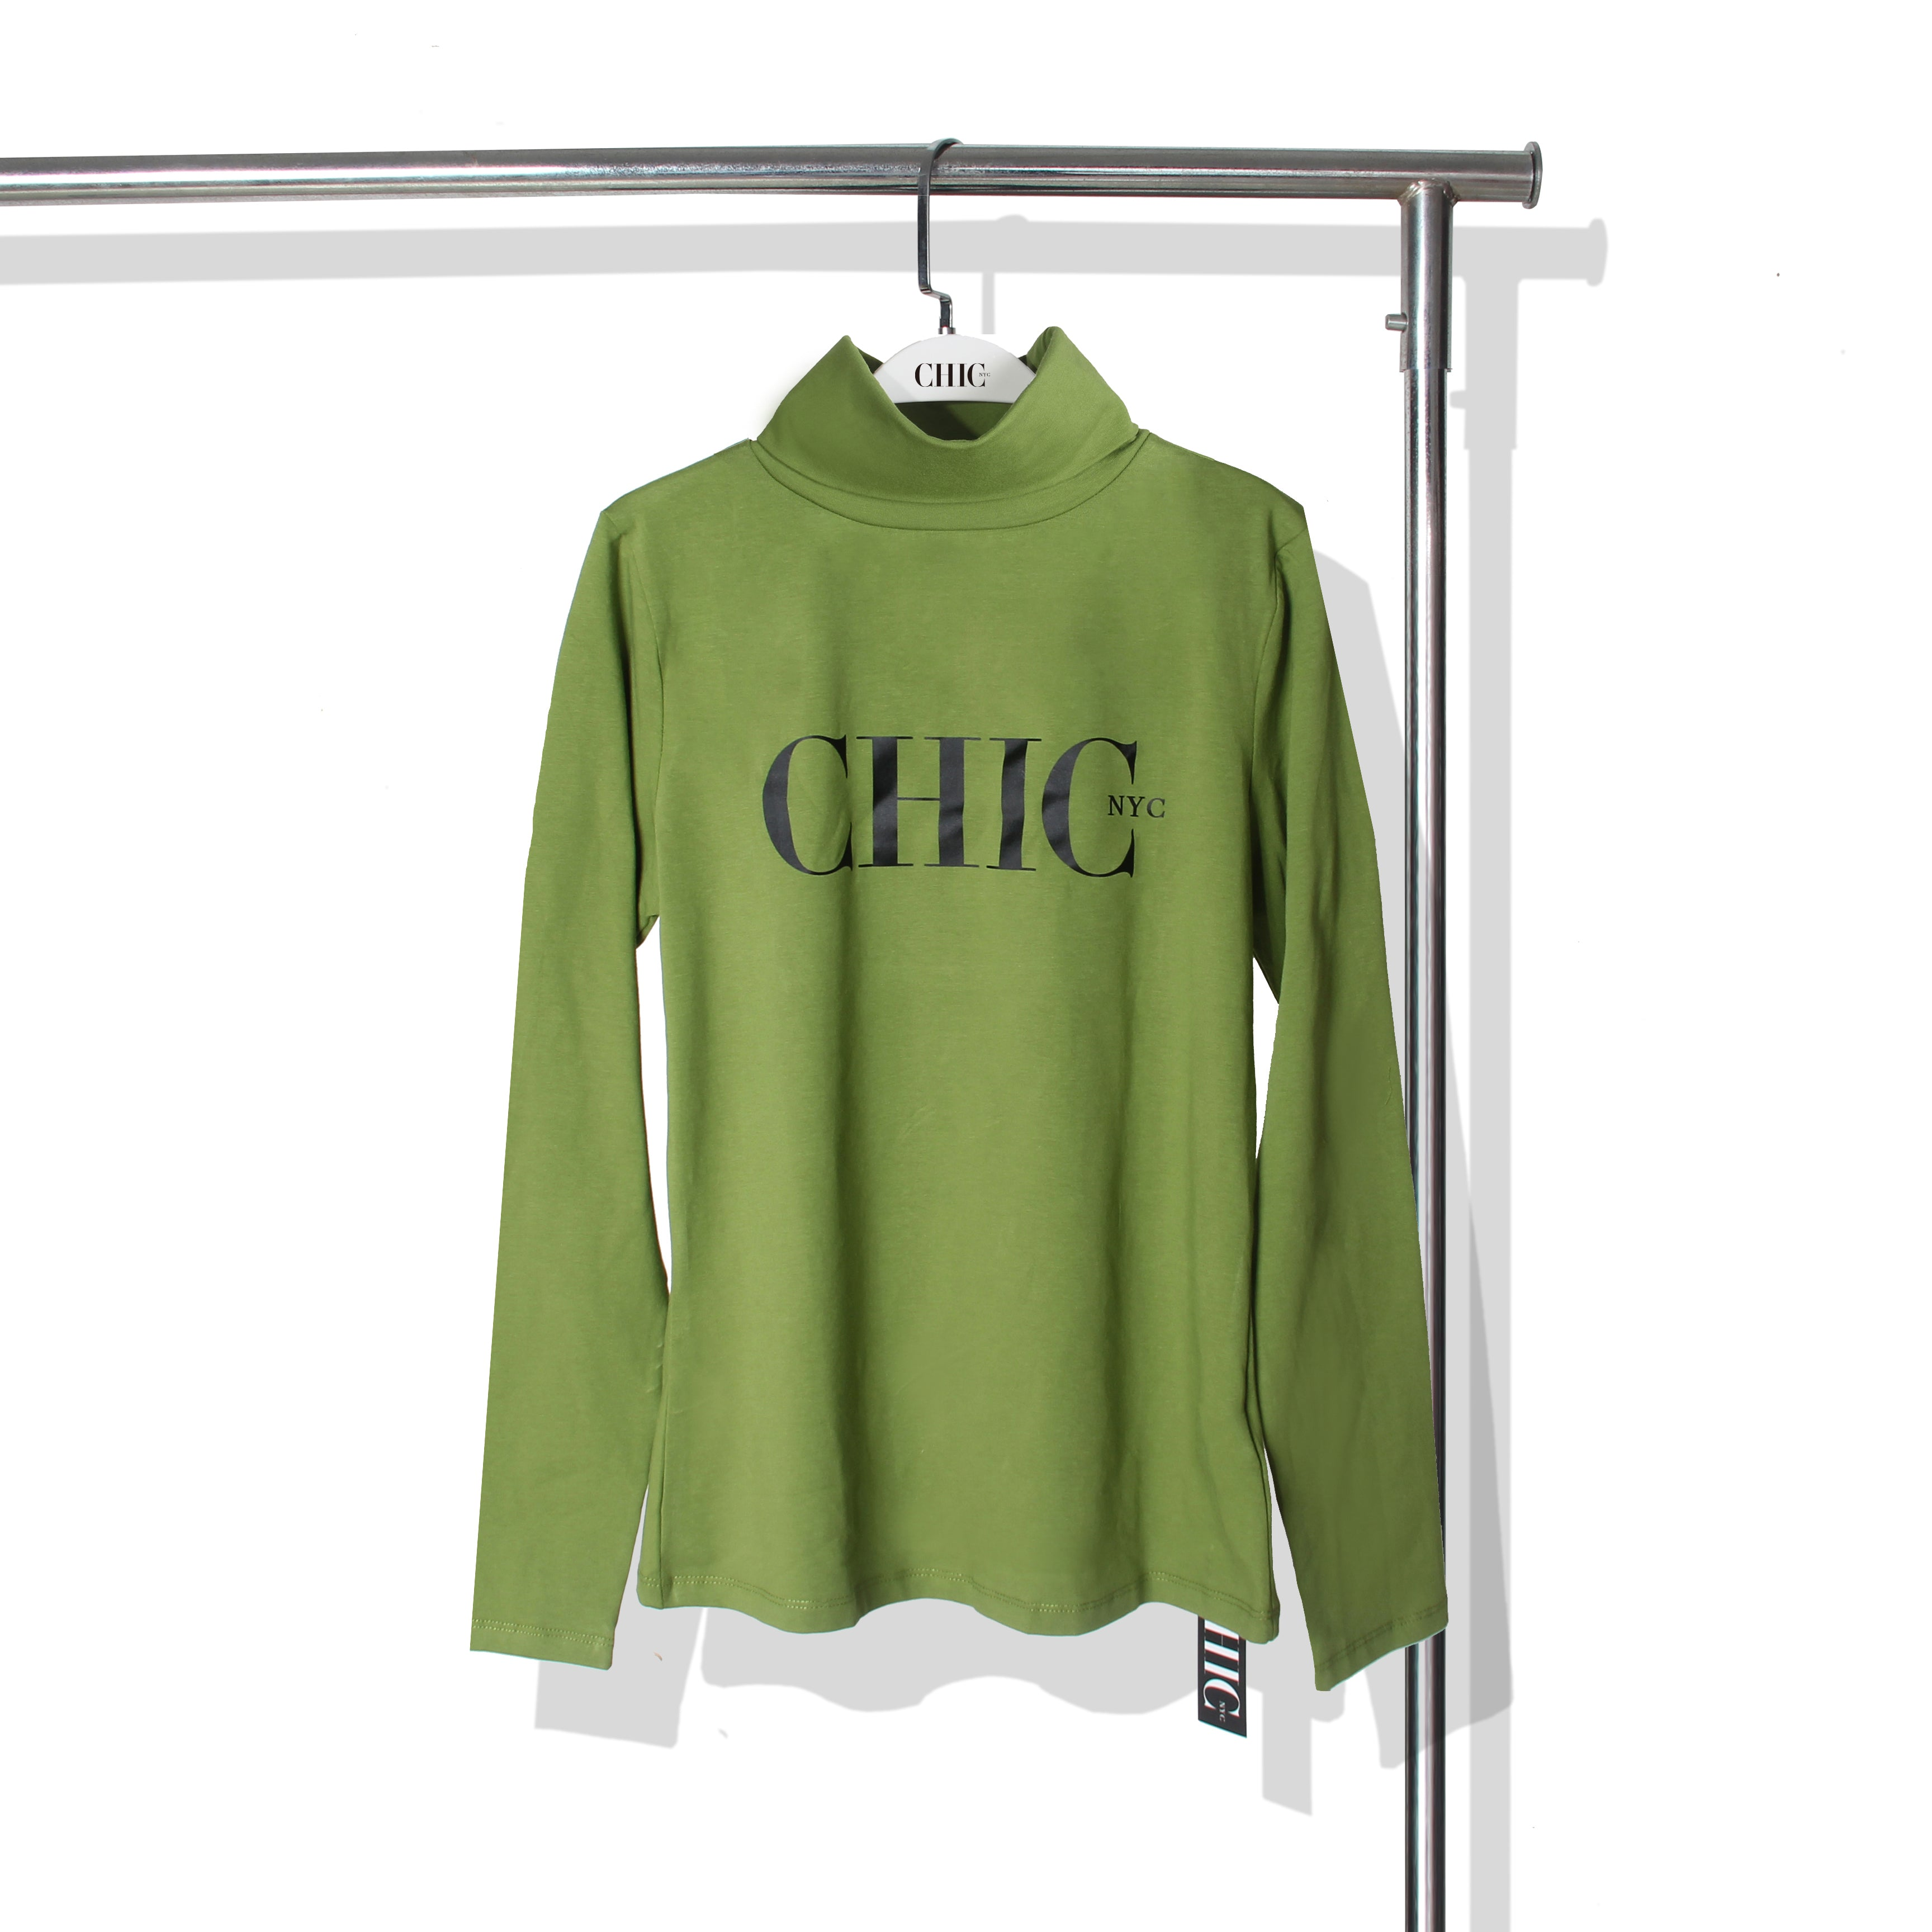 Chic NYC Turtle Neck - Central Park Green